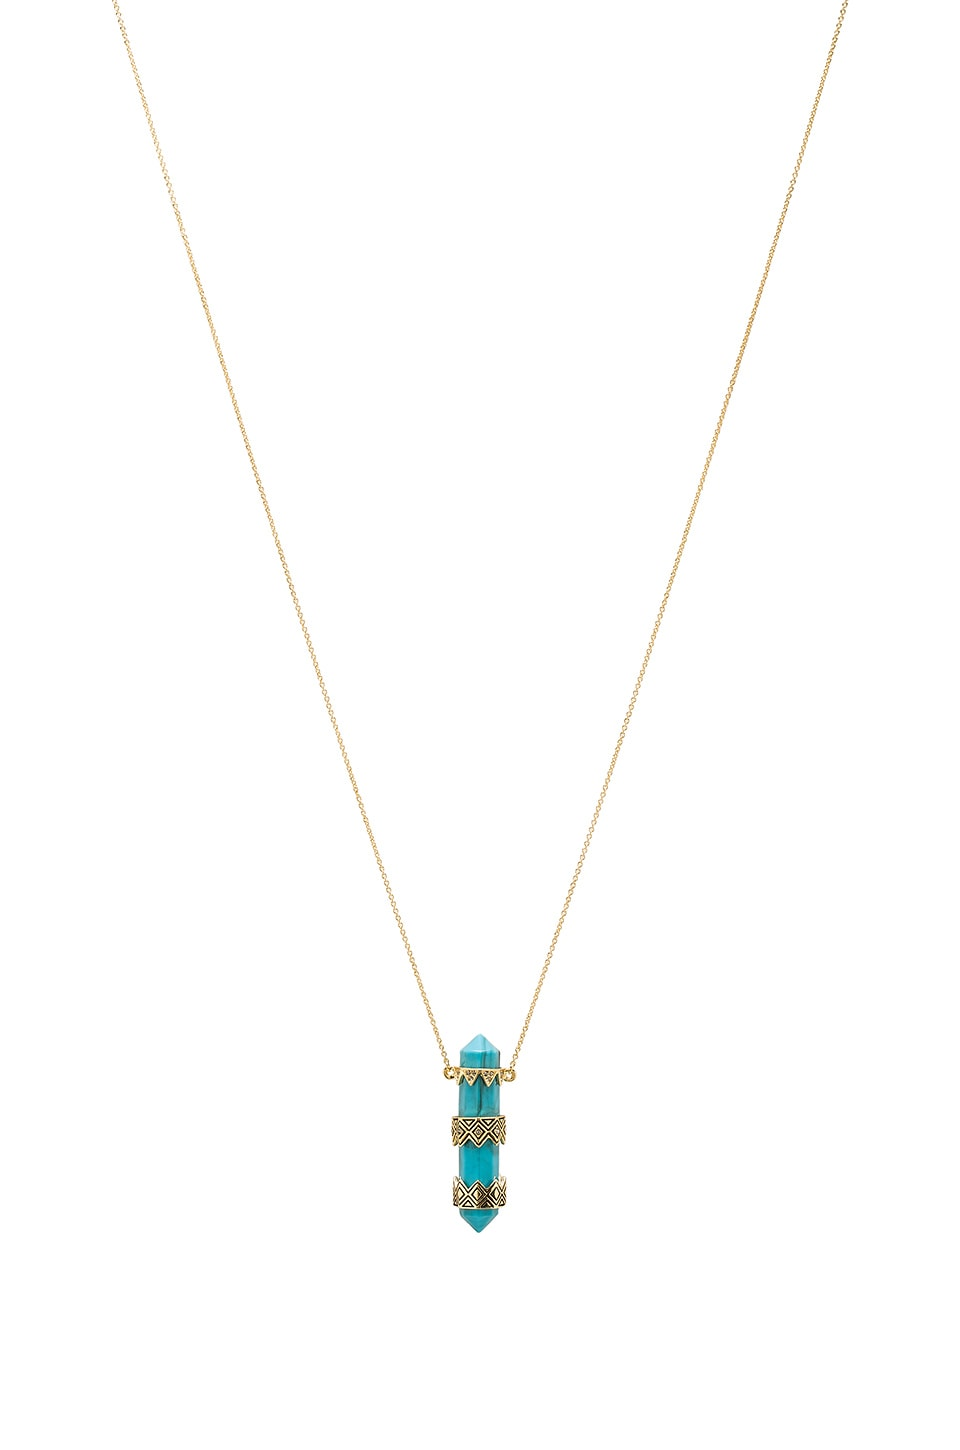 House of Harlow 1960 House of Harlow Prana Pendant Necklace in Turquoise